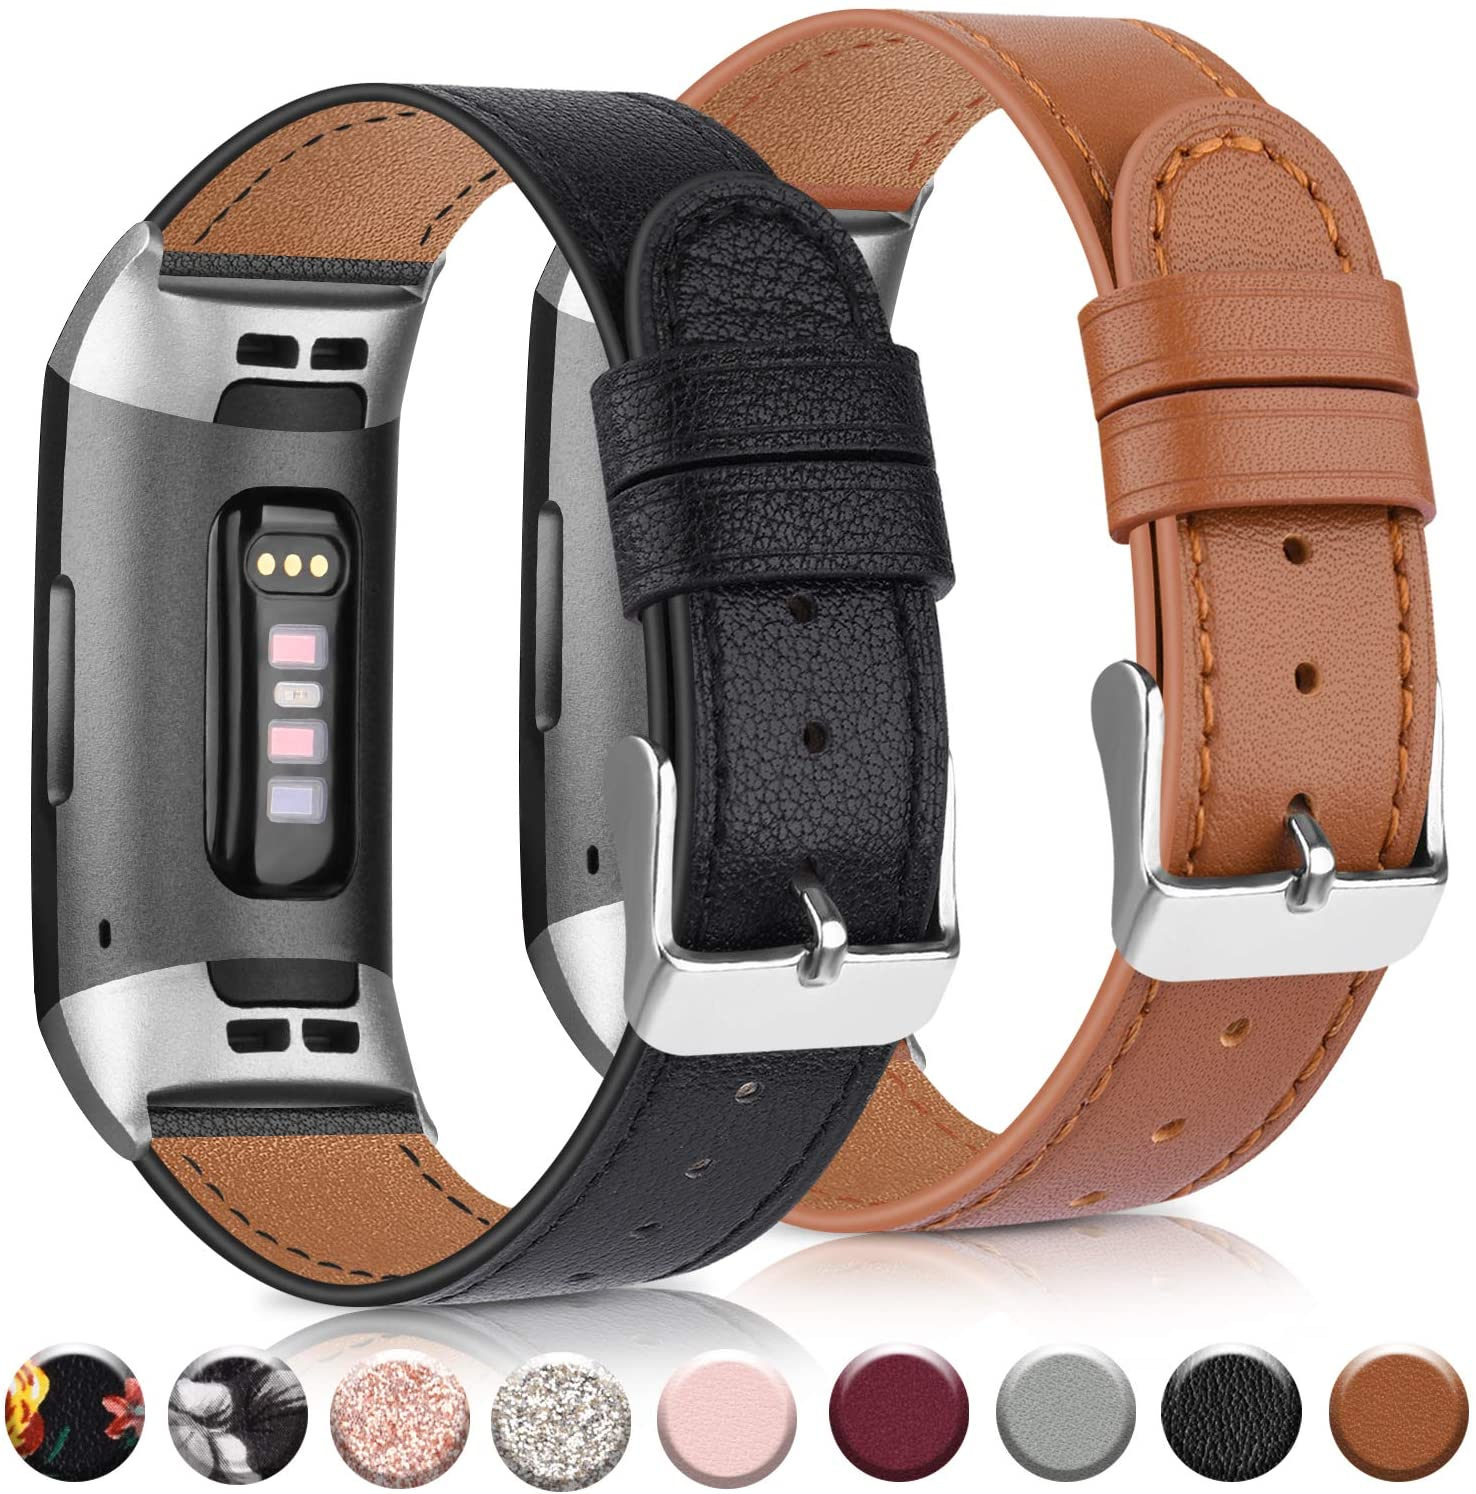 AK Leather Band Compatible with Fitbit Charge 4 Bands & Fitbit Charge 3 Bands, Adjustable Top Grain Leather Wristband for Charge 4 / Charge 3 / Charge 3 SE Smart Watch (Black/Brown)